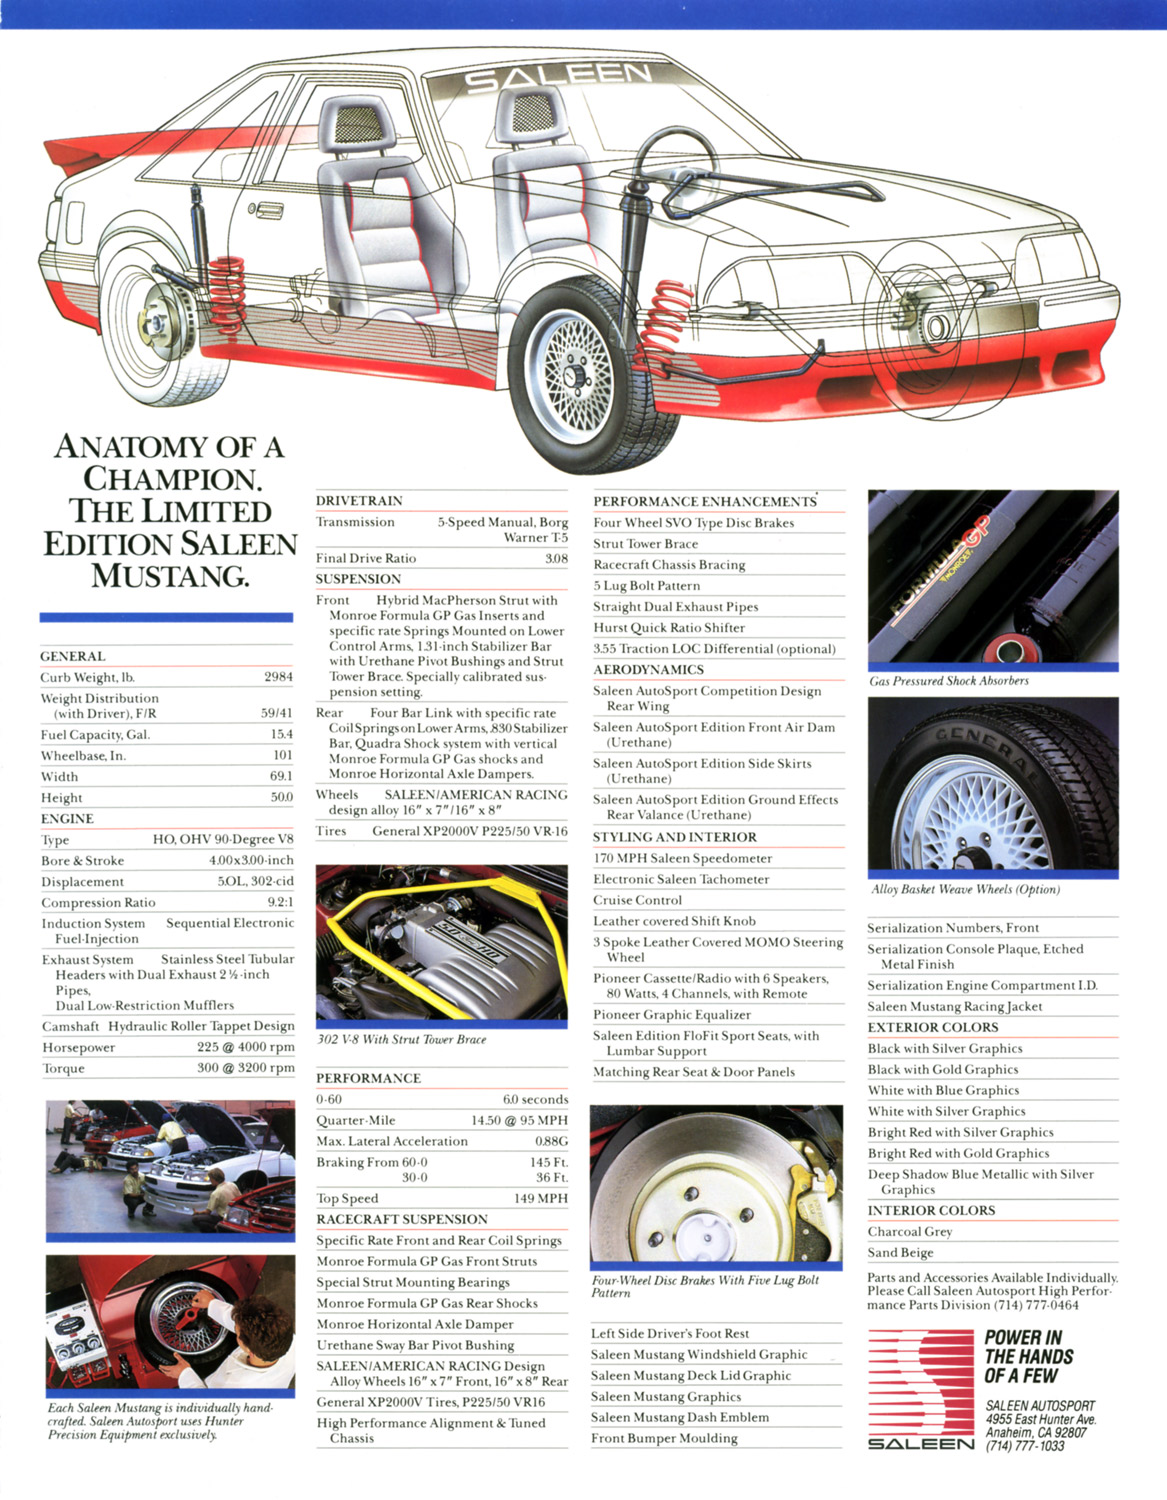 1989 Saleen Mustang Specifications